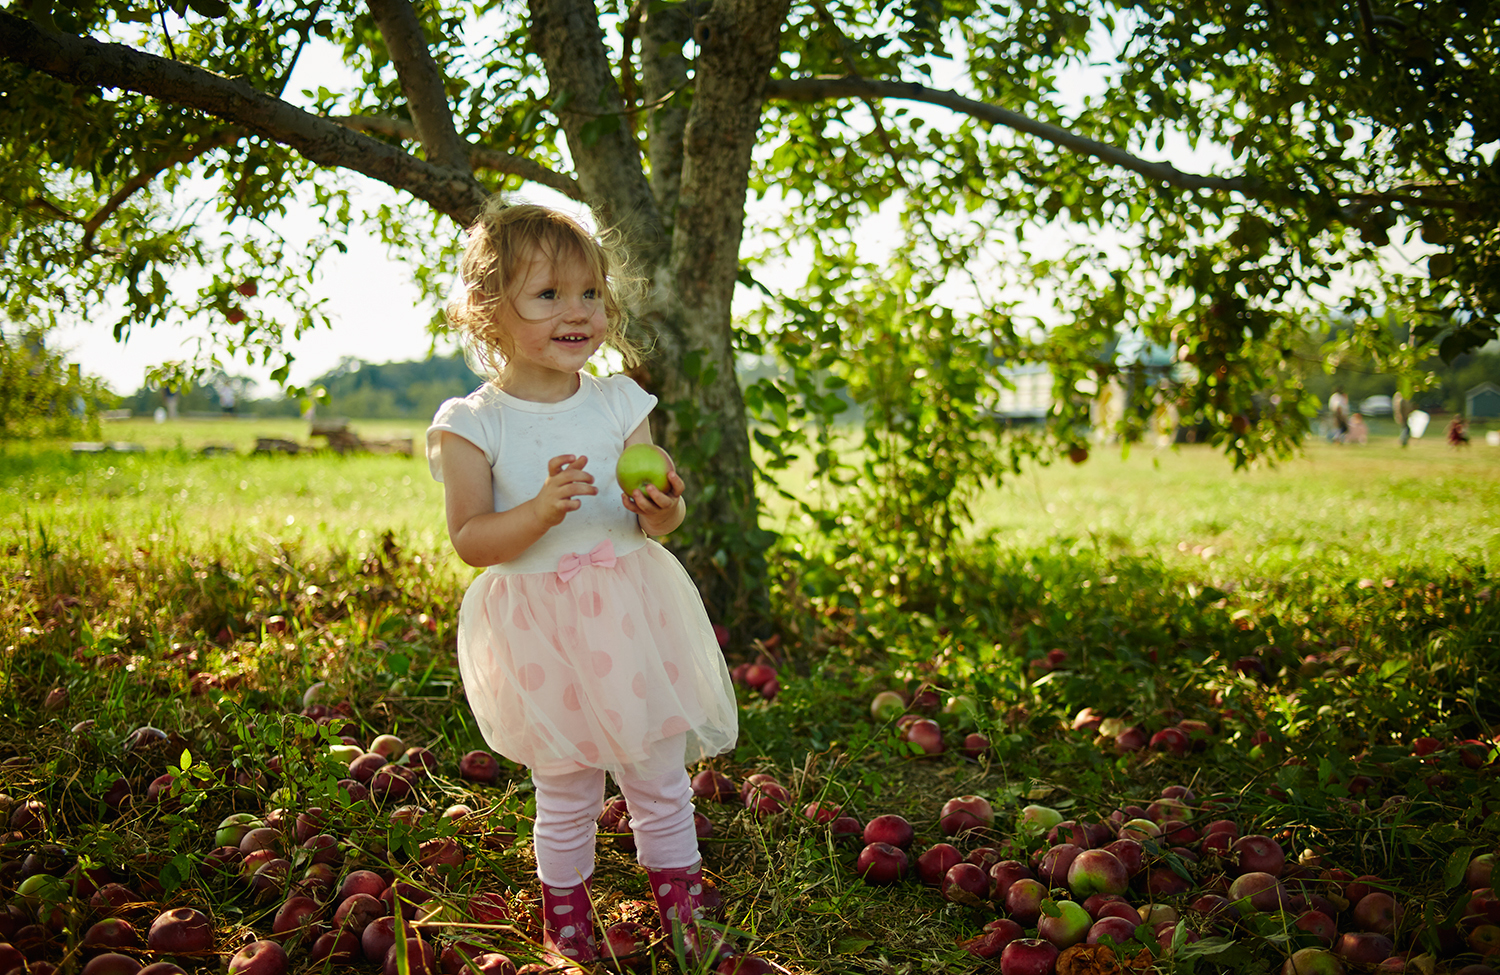 091915_Apple_Picking_OuthouseOrchards_556.jpg